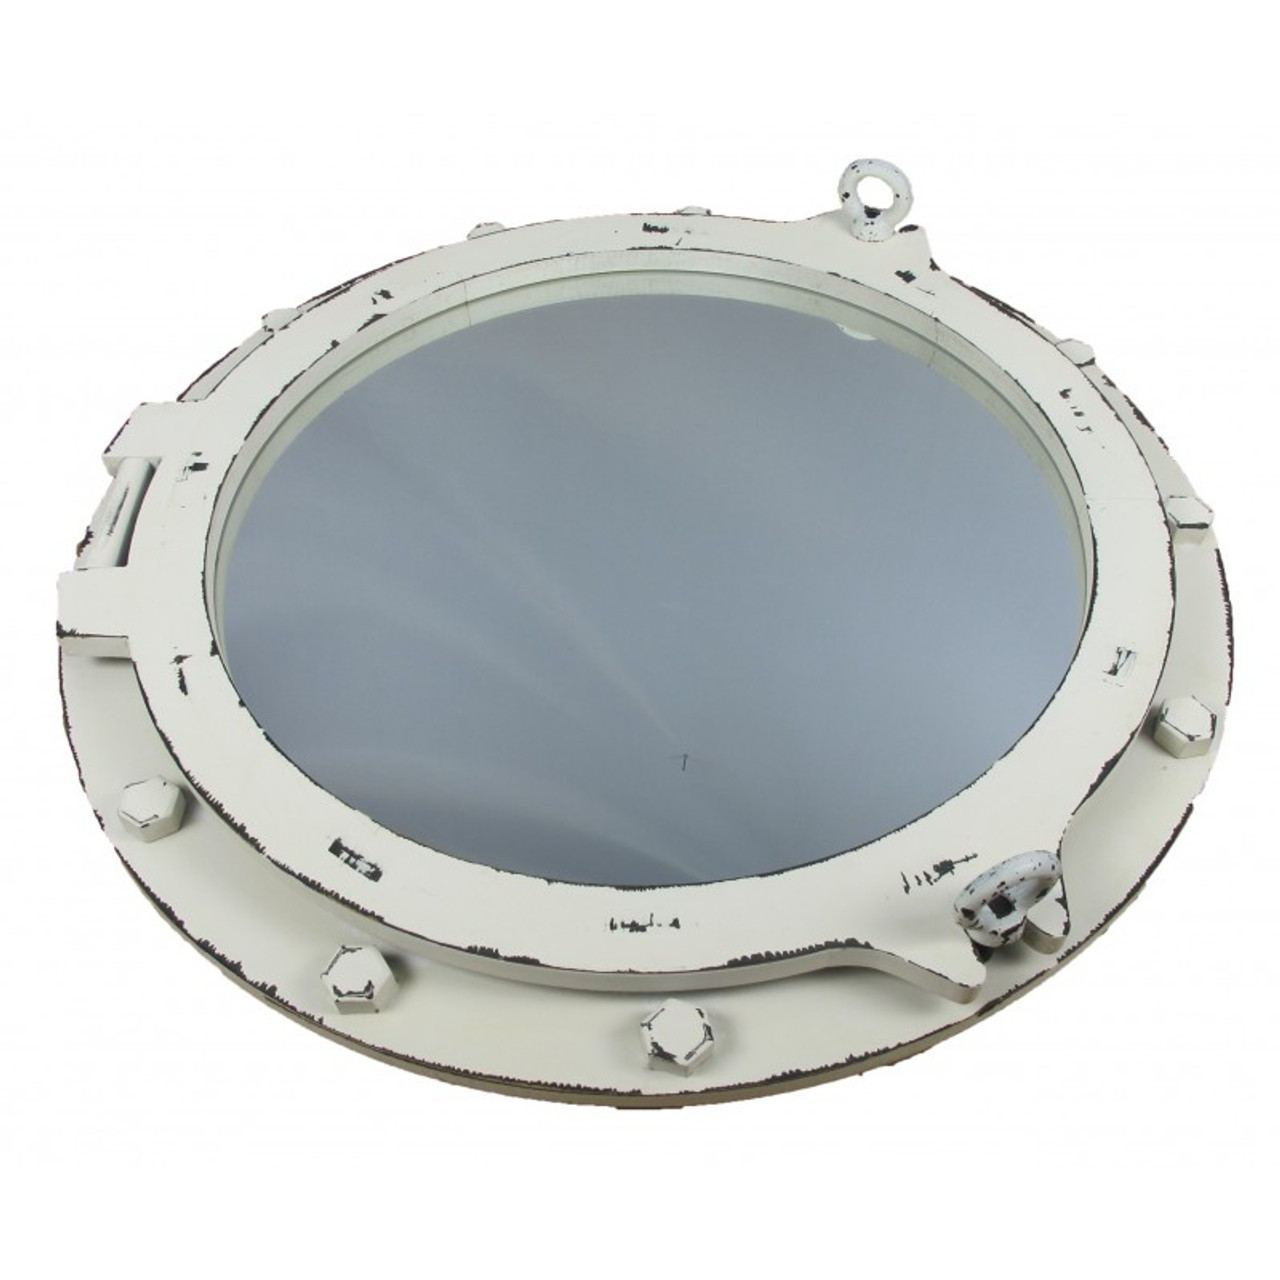 Wooden Porthole Mirror with Antique White Finish - 24""